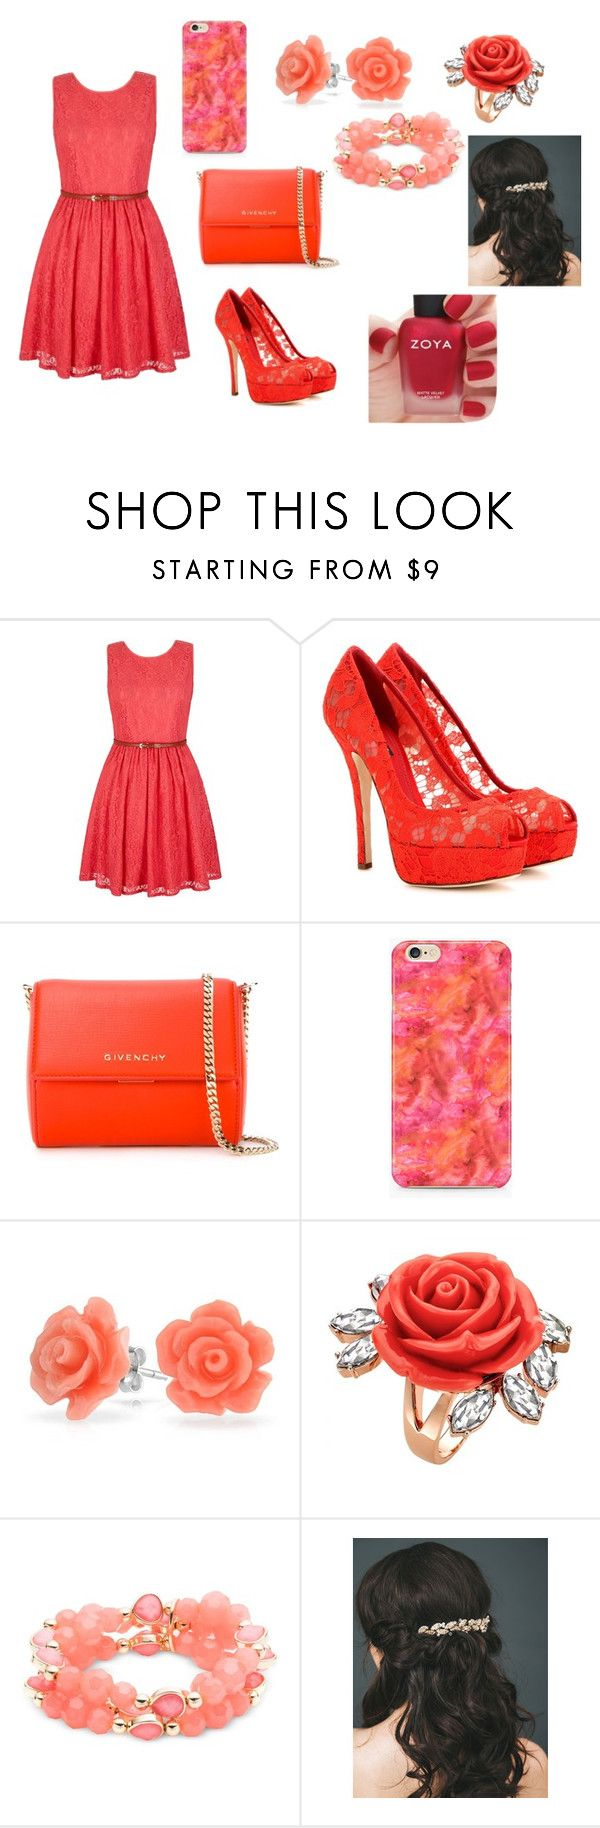 """""""hj"""" by aiste-mini on Polyvore featuring Yumi, Dolce&Gabbana, Givenchy, Bling Jewelry, Mawi, Nine West and Zoya"""